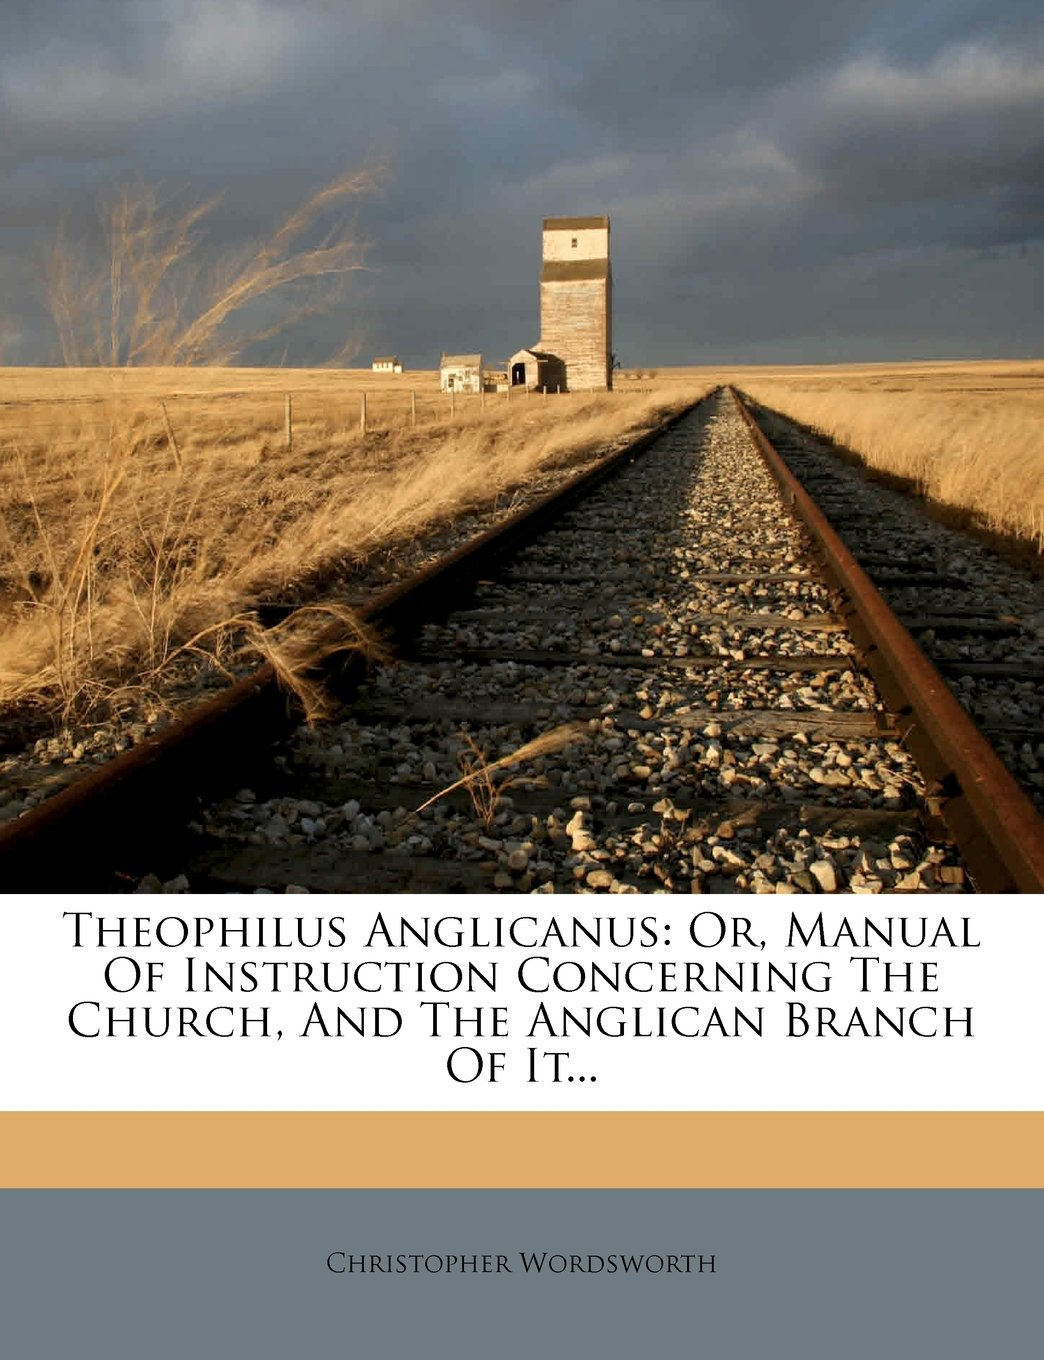 Theophilus Anglicanus: Or, Manual Of Instruction Concerning The Church, And The Anglican Branch Of It... pdf